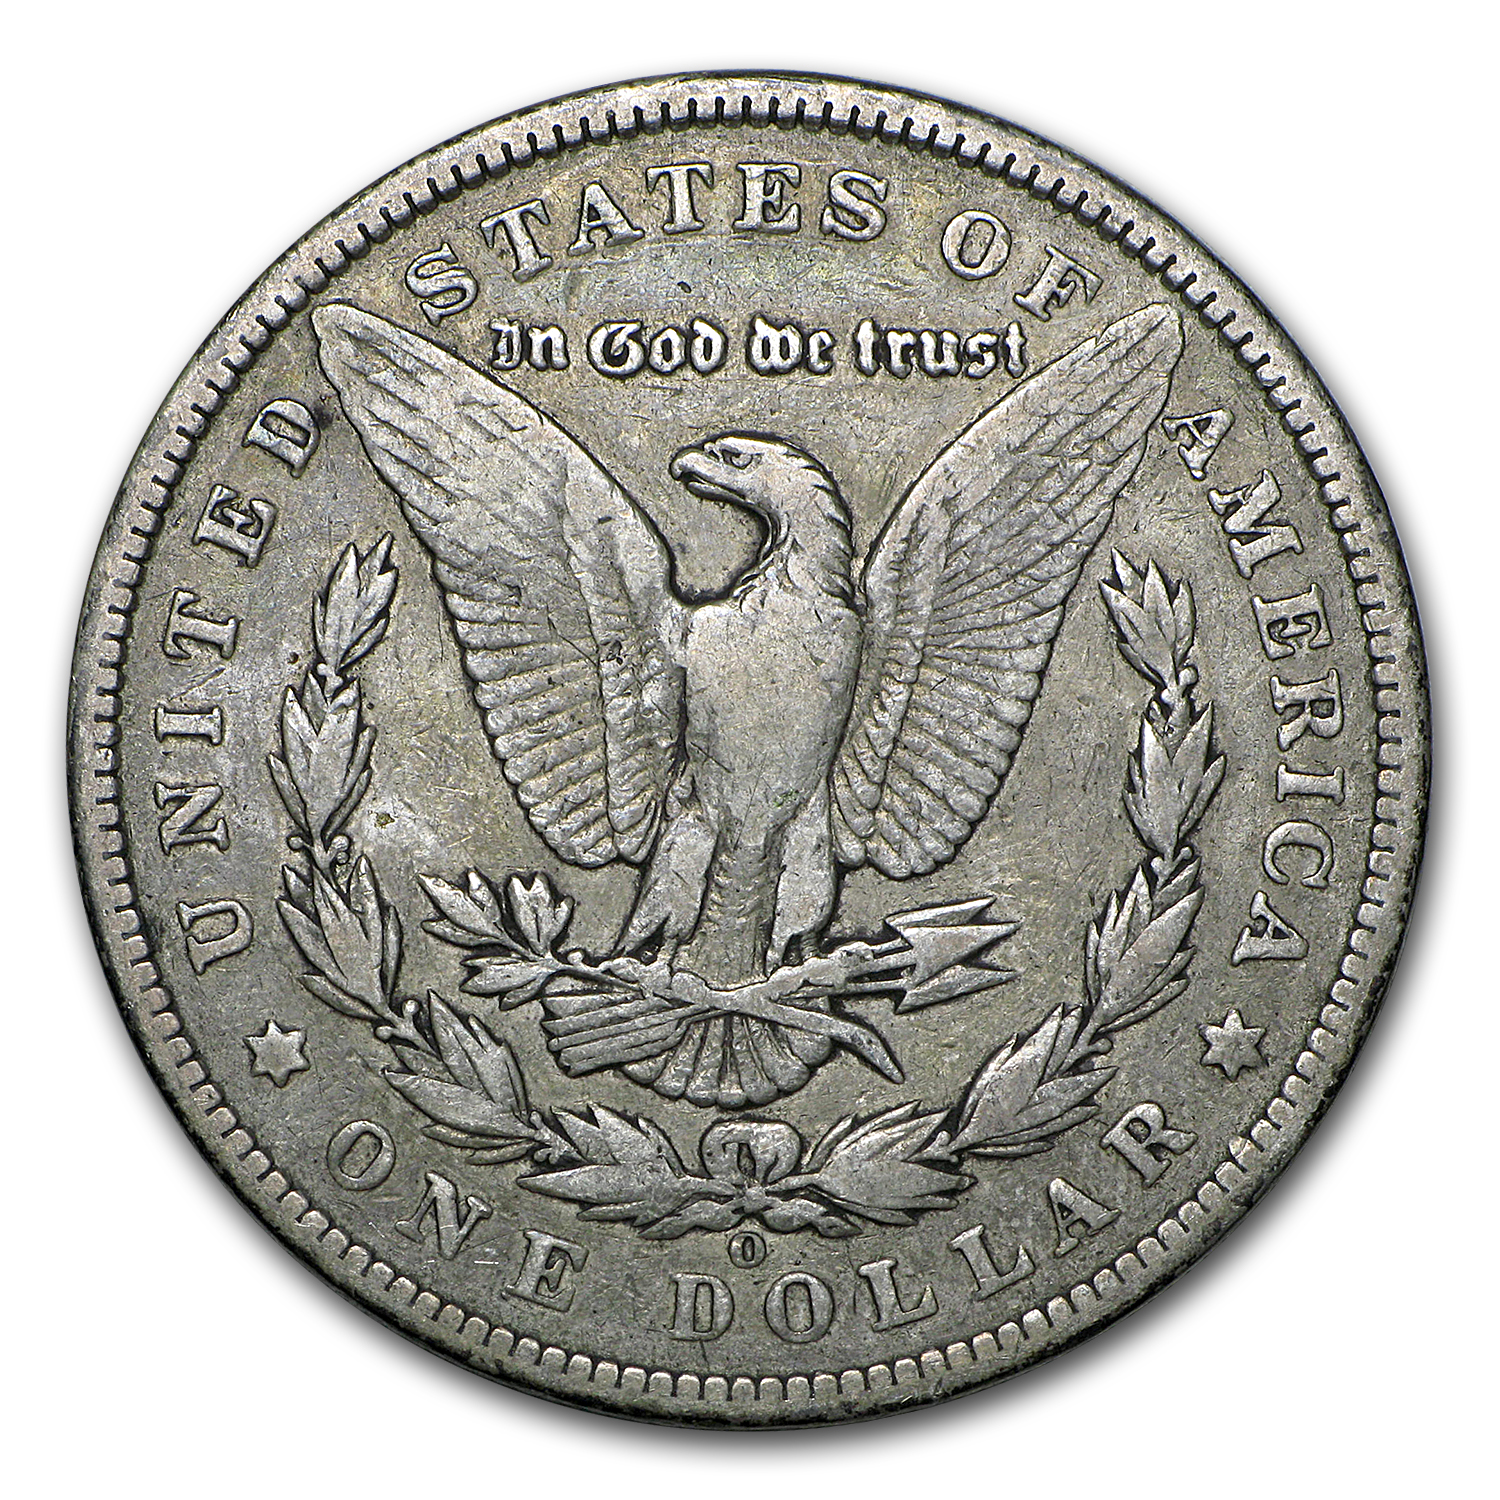 1894-O Morgan Dollar - Very Fine